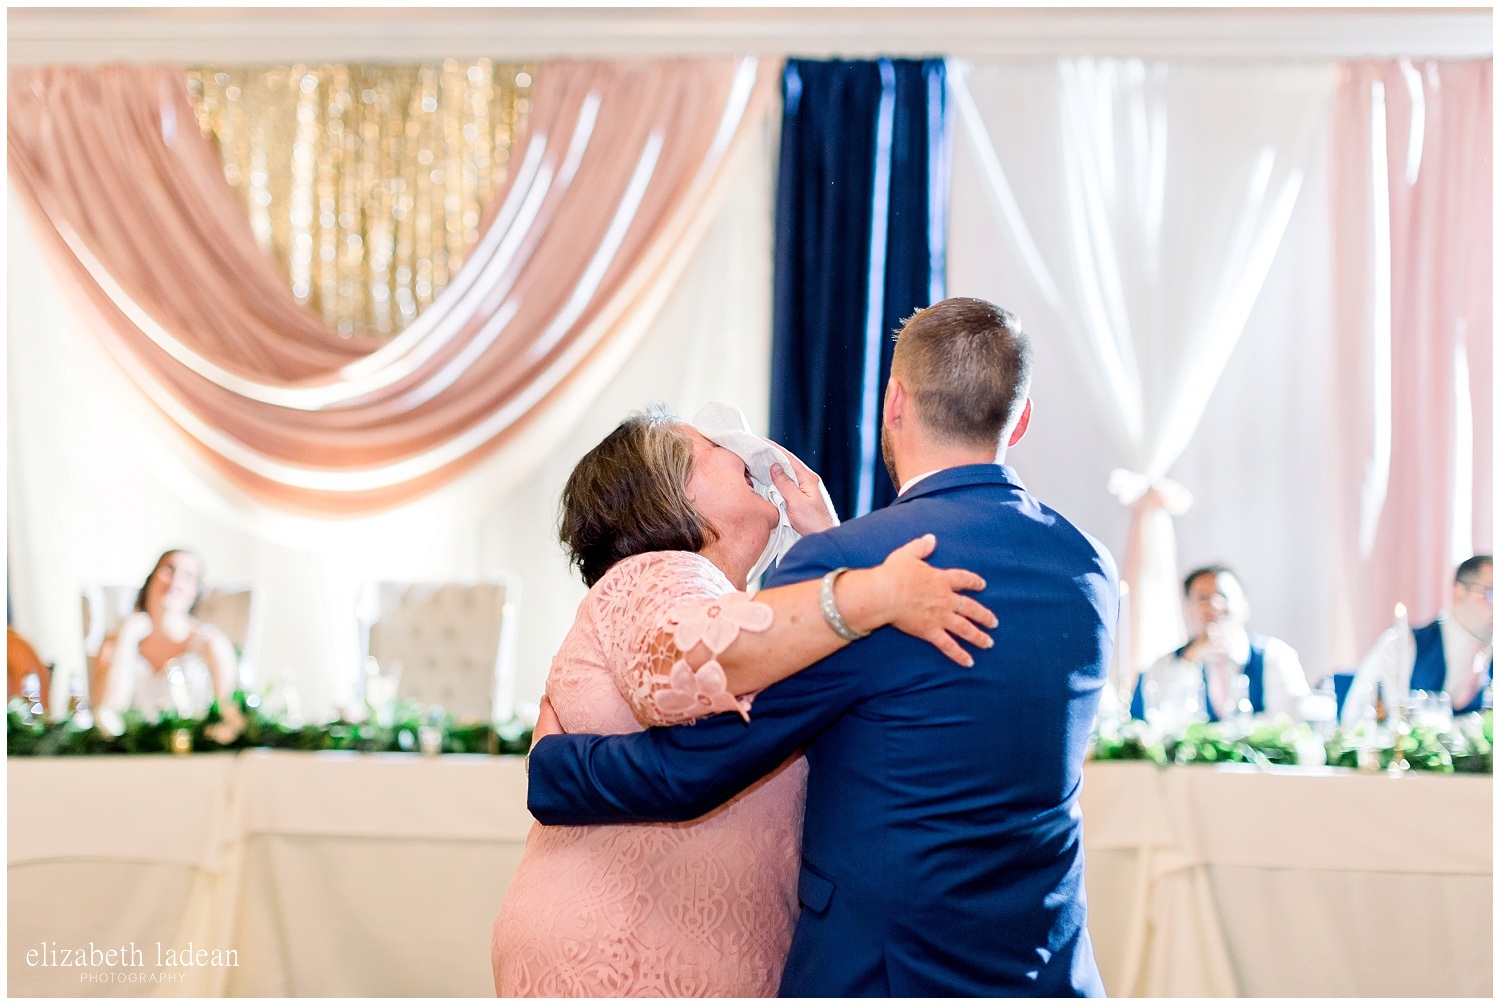 -behind-the-scenes-of-a-wedding-photographer-2018-elizabeth-ladean-photography-photo_3504.jpg